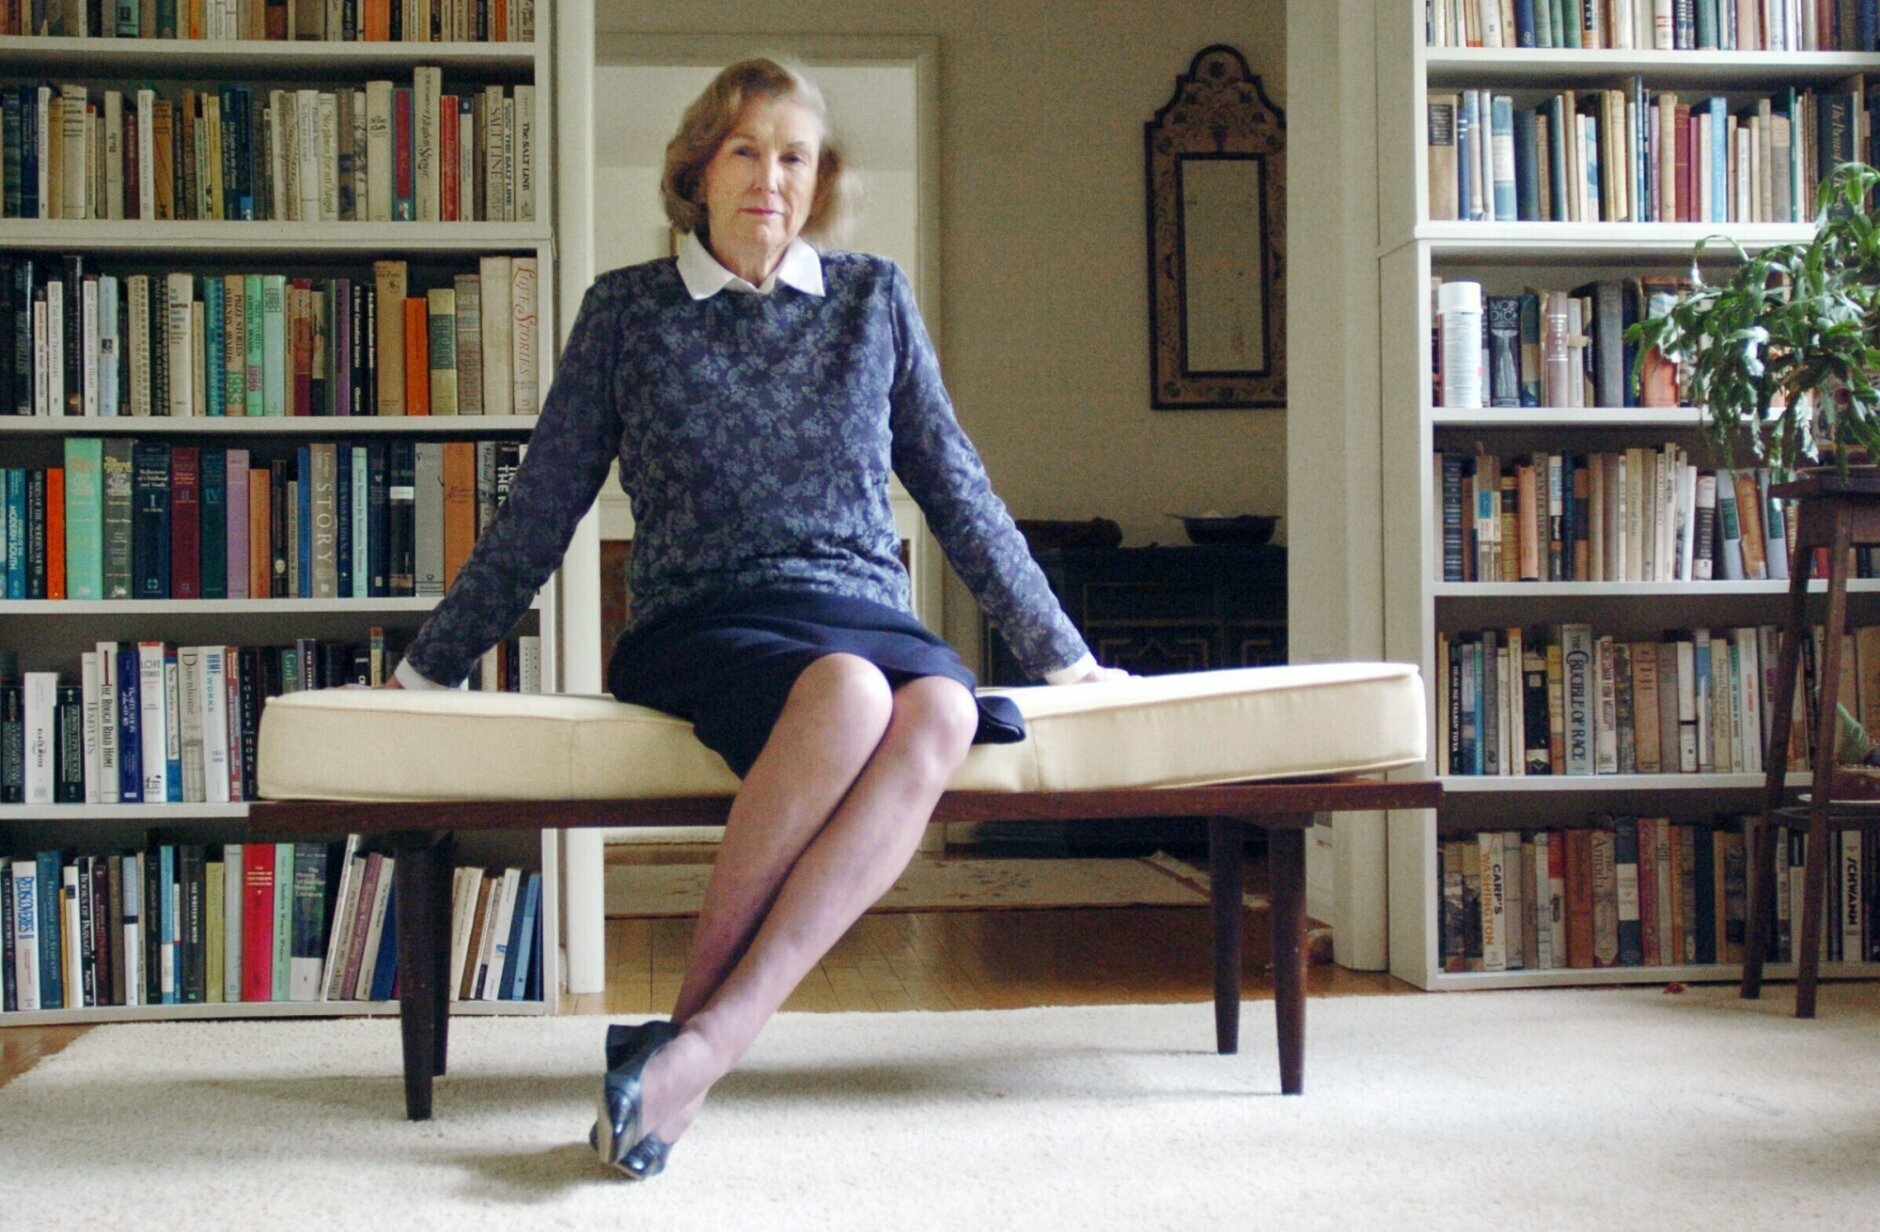 Author Elizabeth Spencer is pictured in Chapel Hill, North Carolina, in front of a personal library in 2005. Spencer died on Dec. 22, 2019 in Chapel Hill, North Carolina, at age 98, according to the playwright Craig Lucas. (News Observer via AP, File)